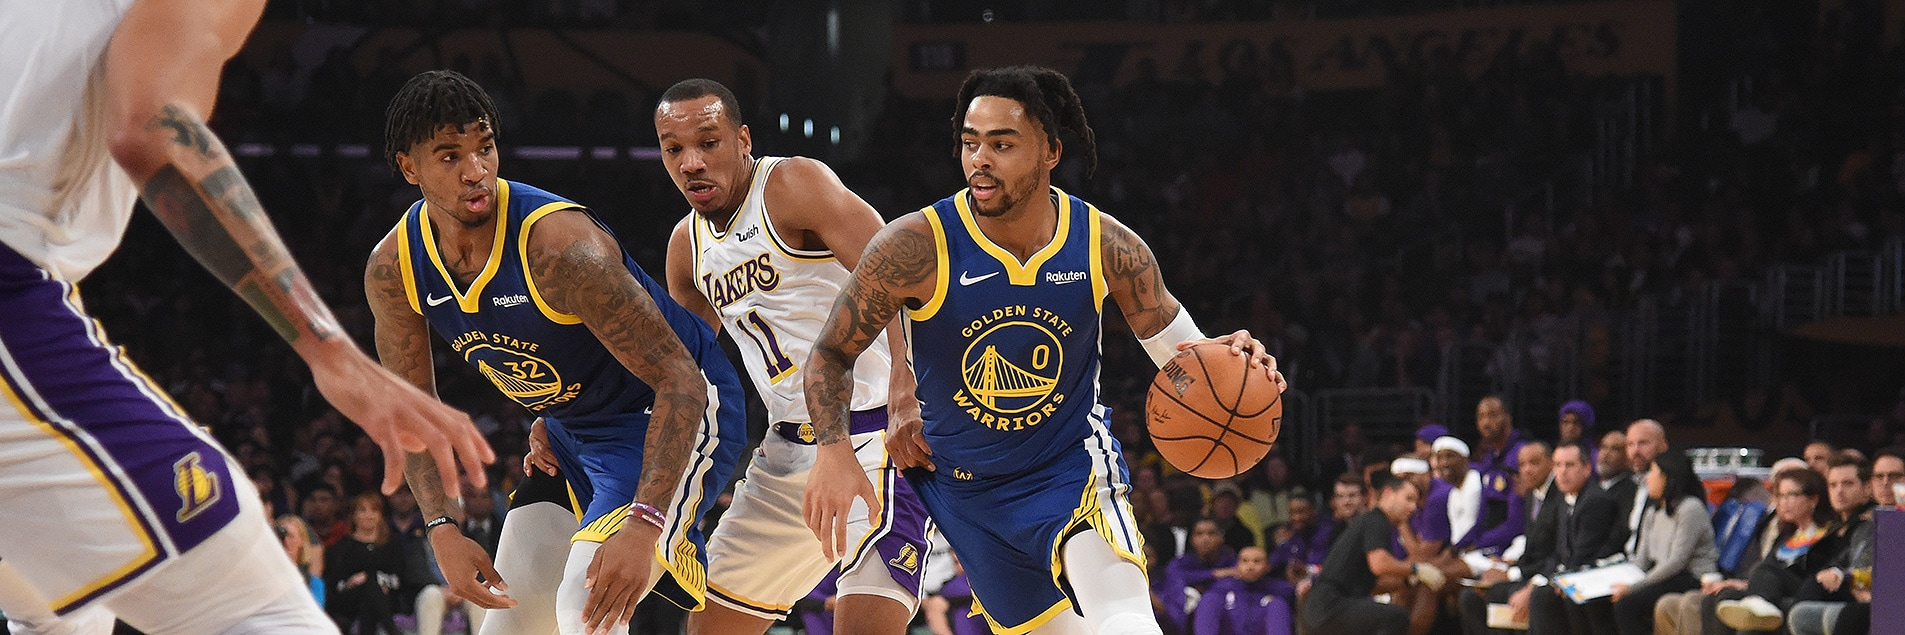 Russell Scores 23 in Preseason Loss to